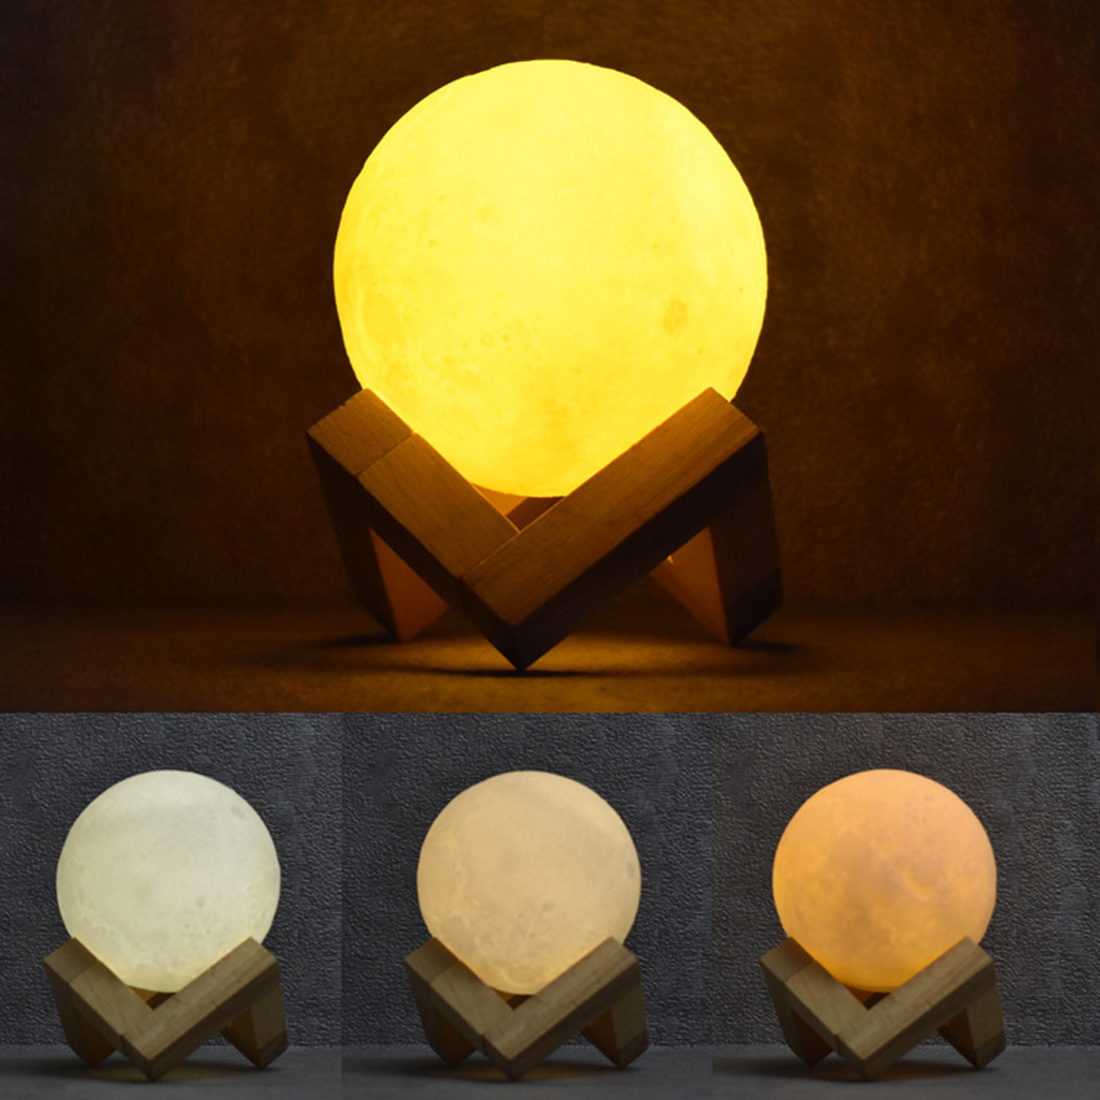 3D Artificial Moon Night Light Bedside Lamp Touching Switch Colorful Light Figurines Miniatures Home Decor Creative Gift F